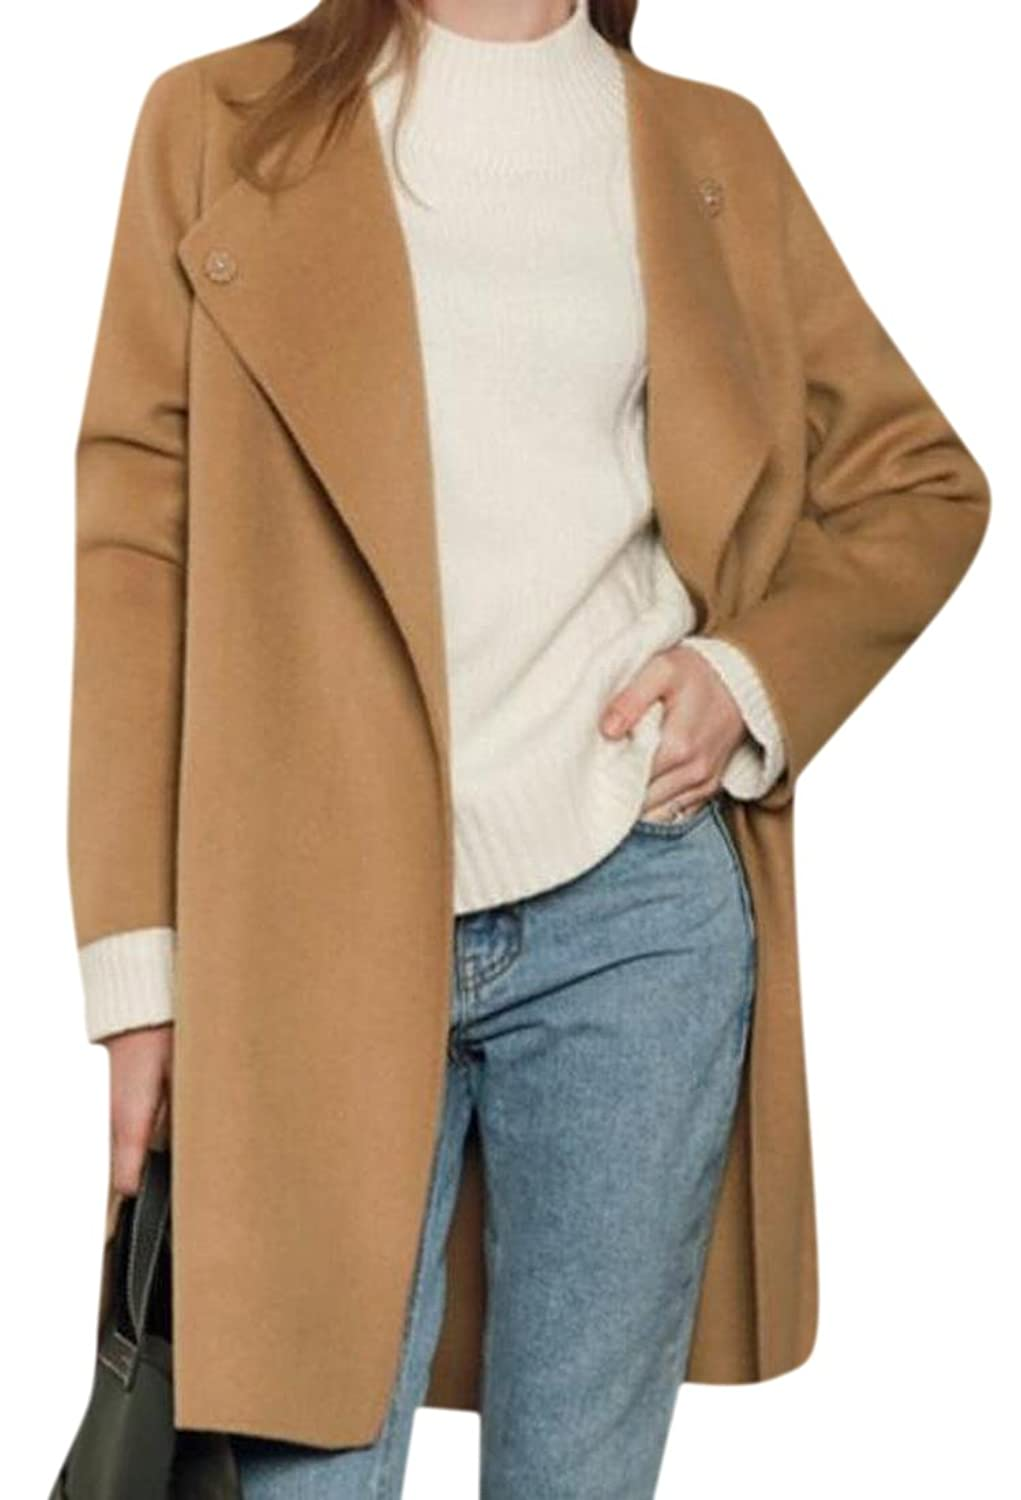 Tootless Women's Fashion Solid Colored Long Sleeve Trench Coat